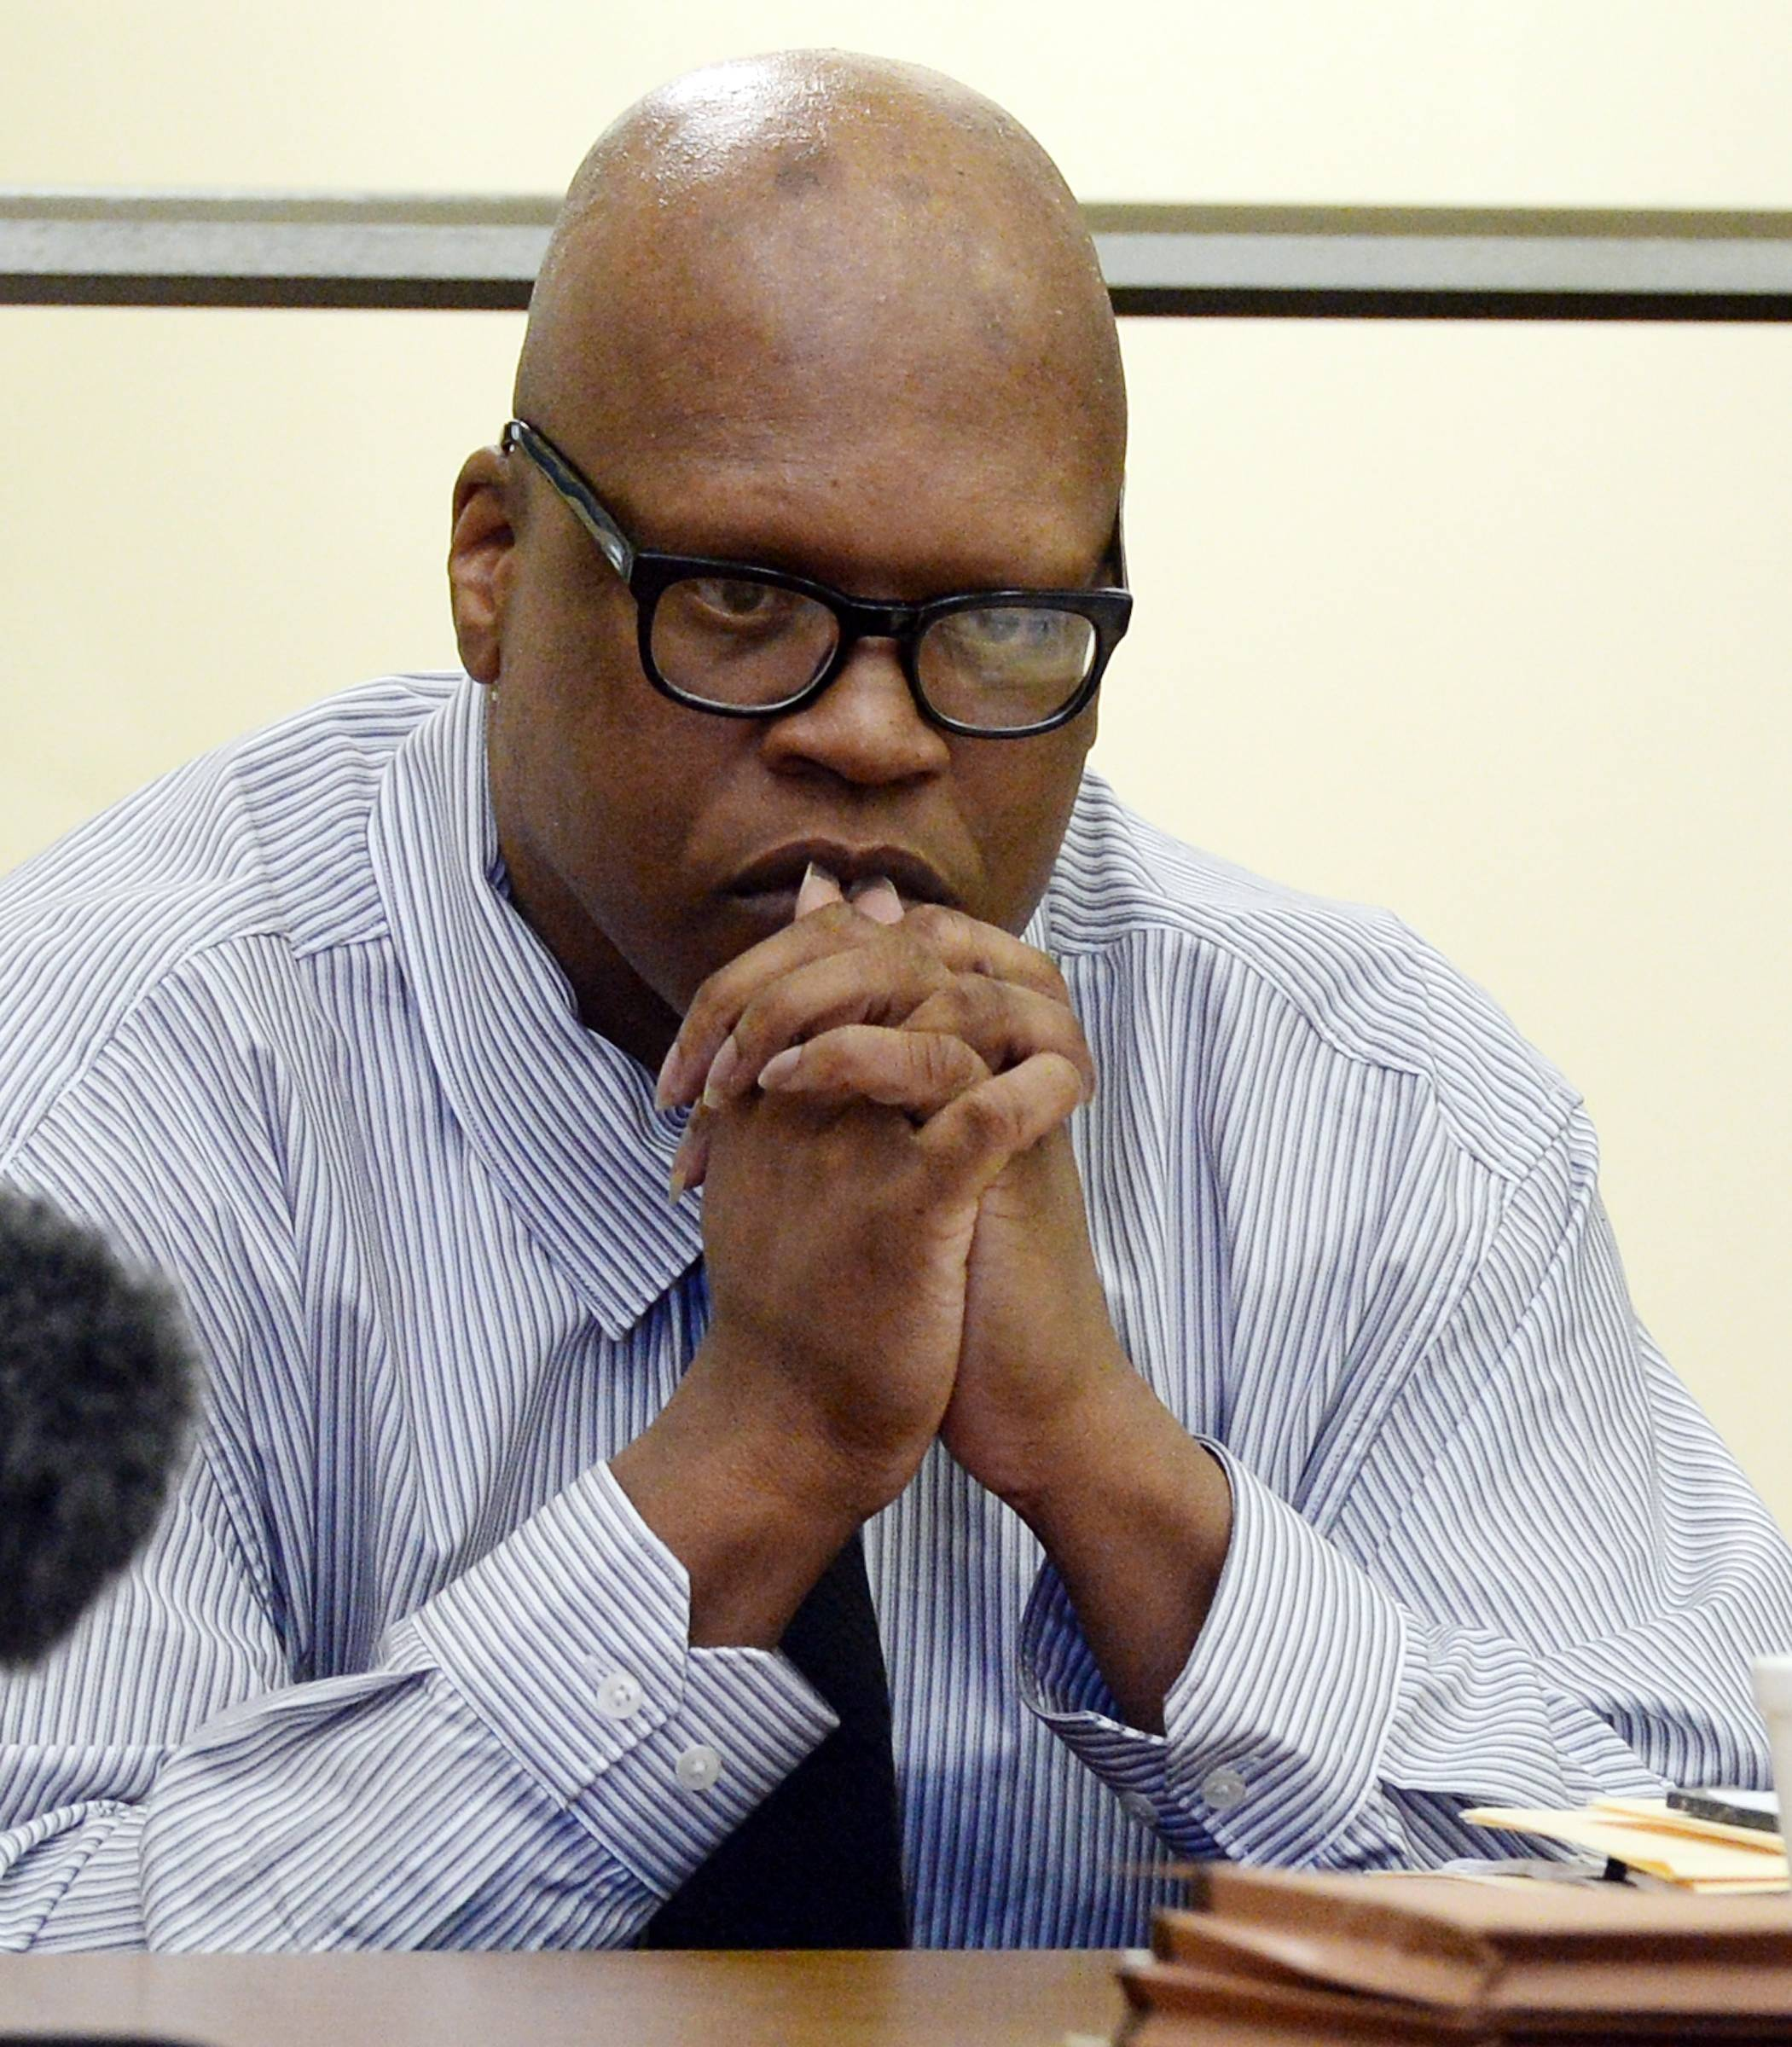 Leon Brown listens to evidence during a court hearing for him and his brother, death row inmate Henry McCollum Tuesday, Sept. 2, 2014 in Lumberton, N.C. On Tuesday, a judge overturned the convictions of Henry McCollum, 50, and Leon Brown, 46, in the 1983 rape and murder of the 11-year-old girl, citing the new evidence that they are innocent.